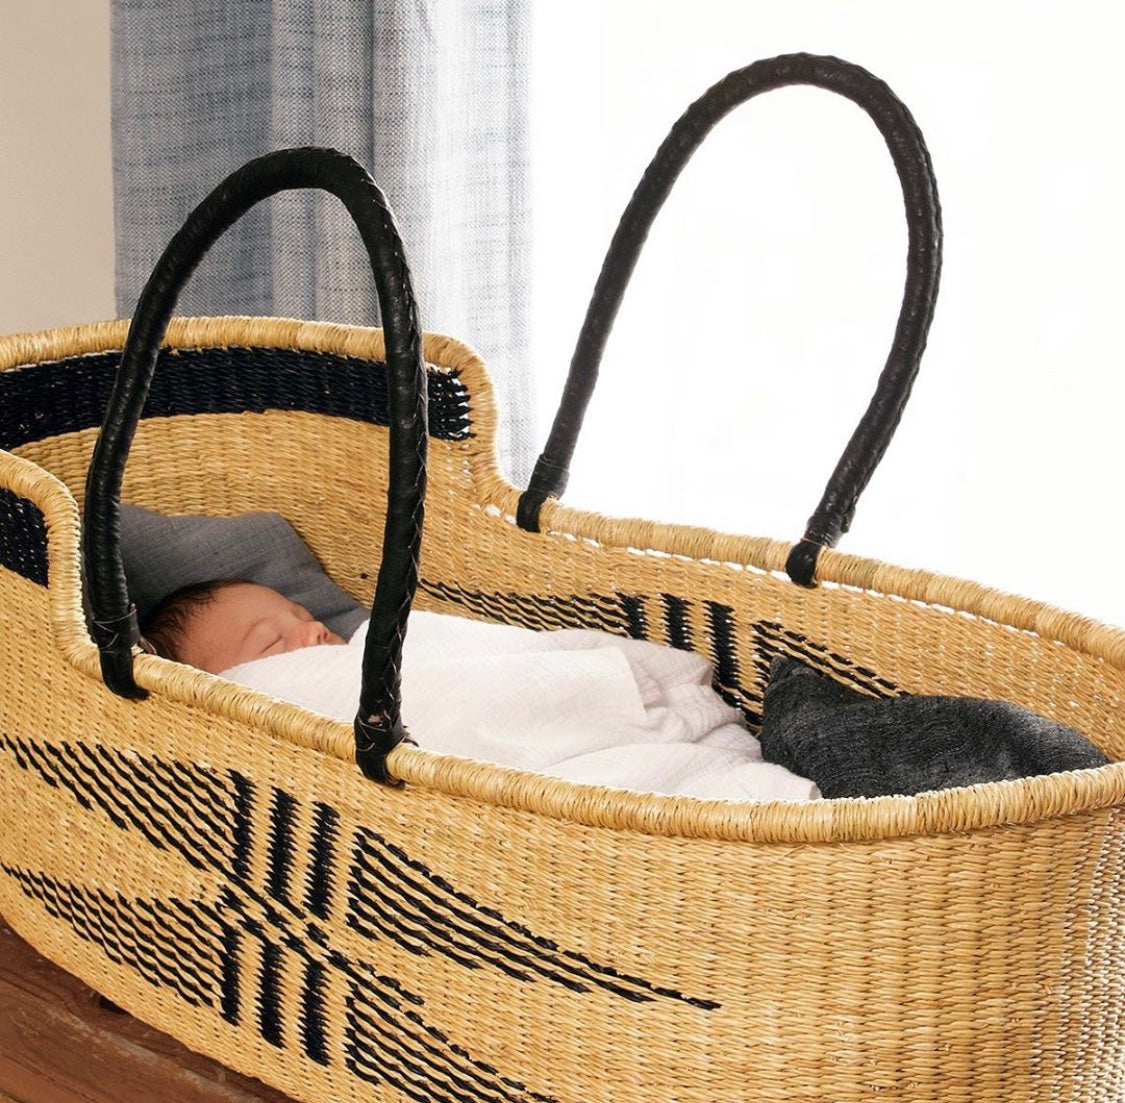 Angel Wings Moses Basket with Leather Handles - Black